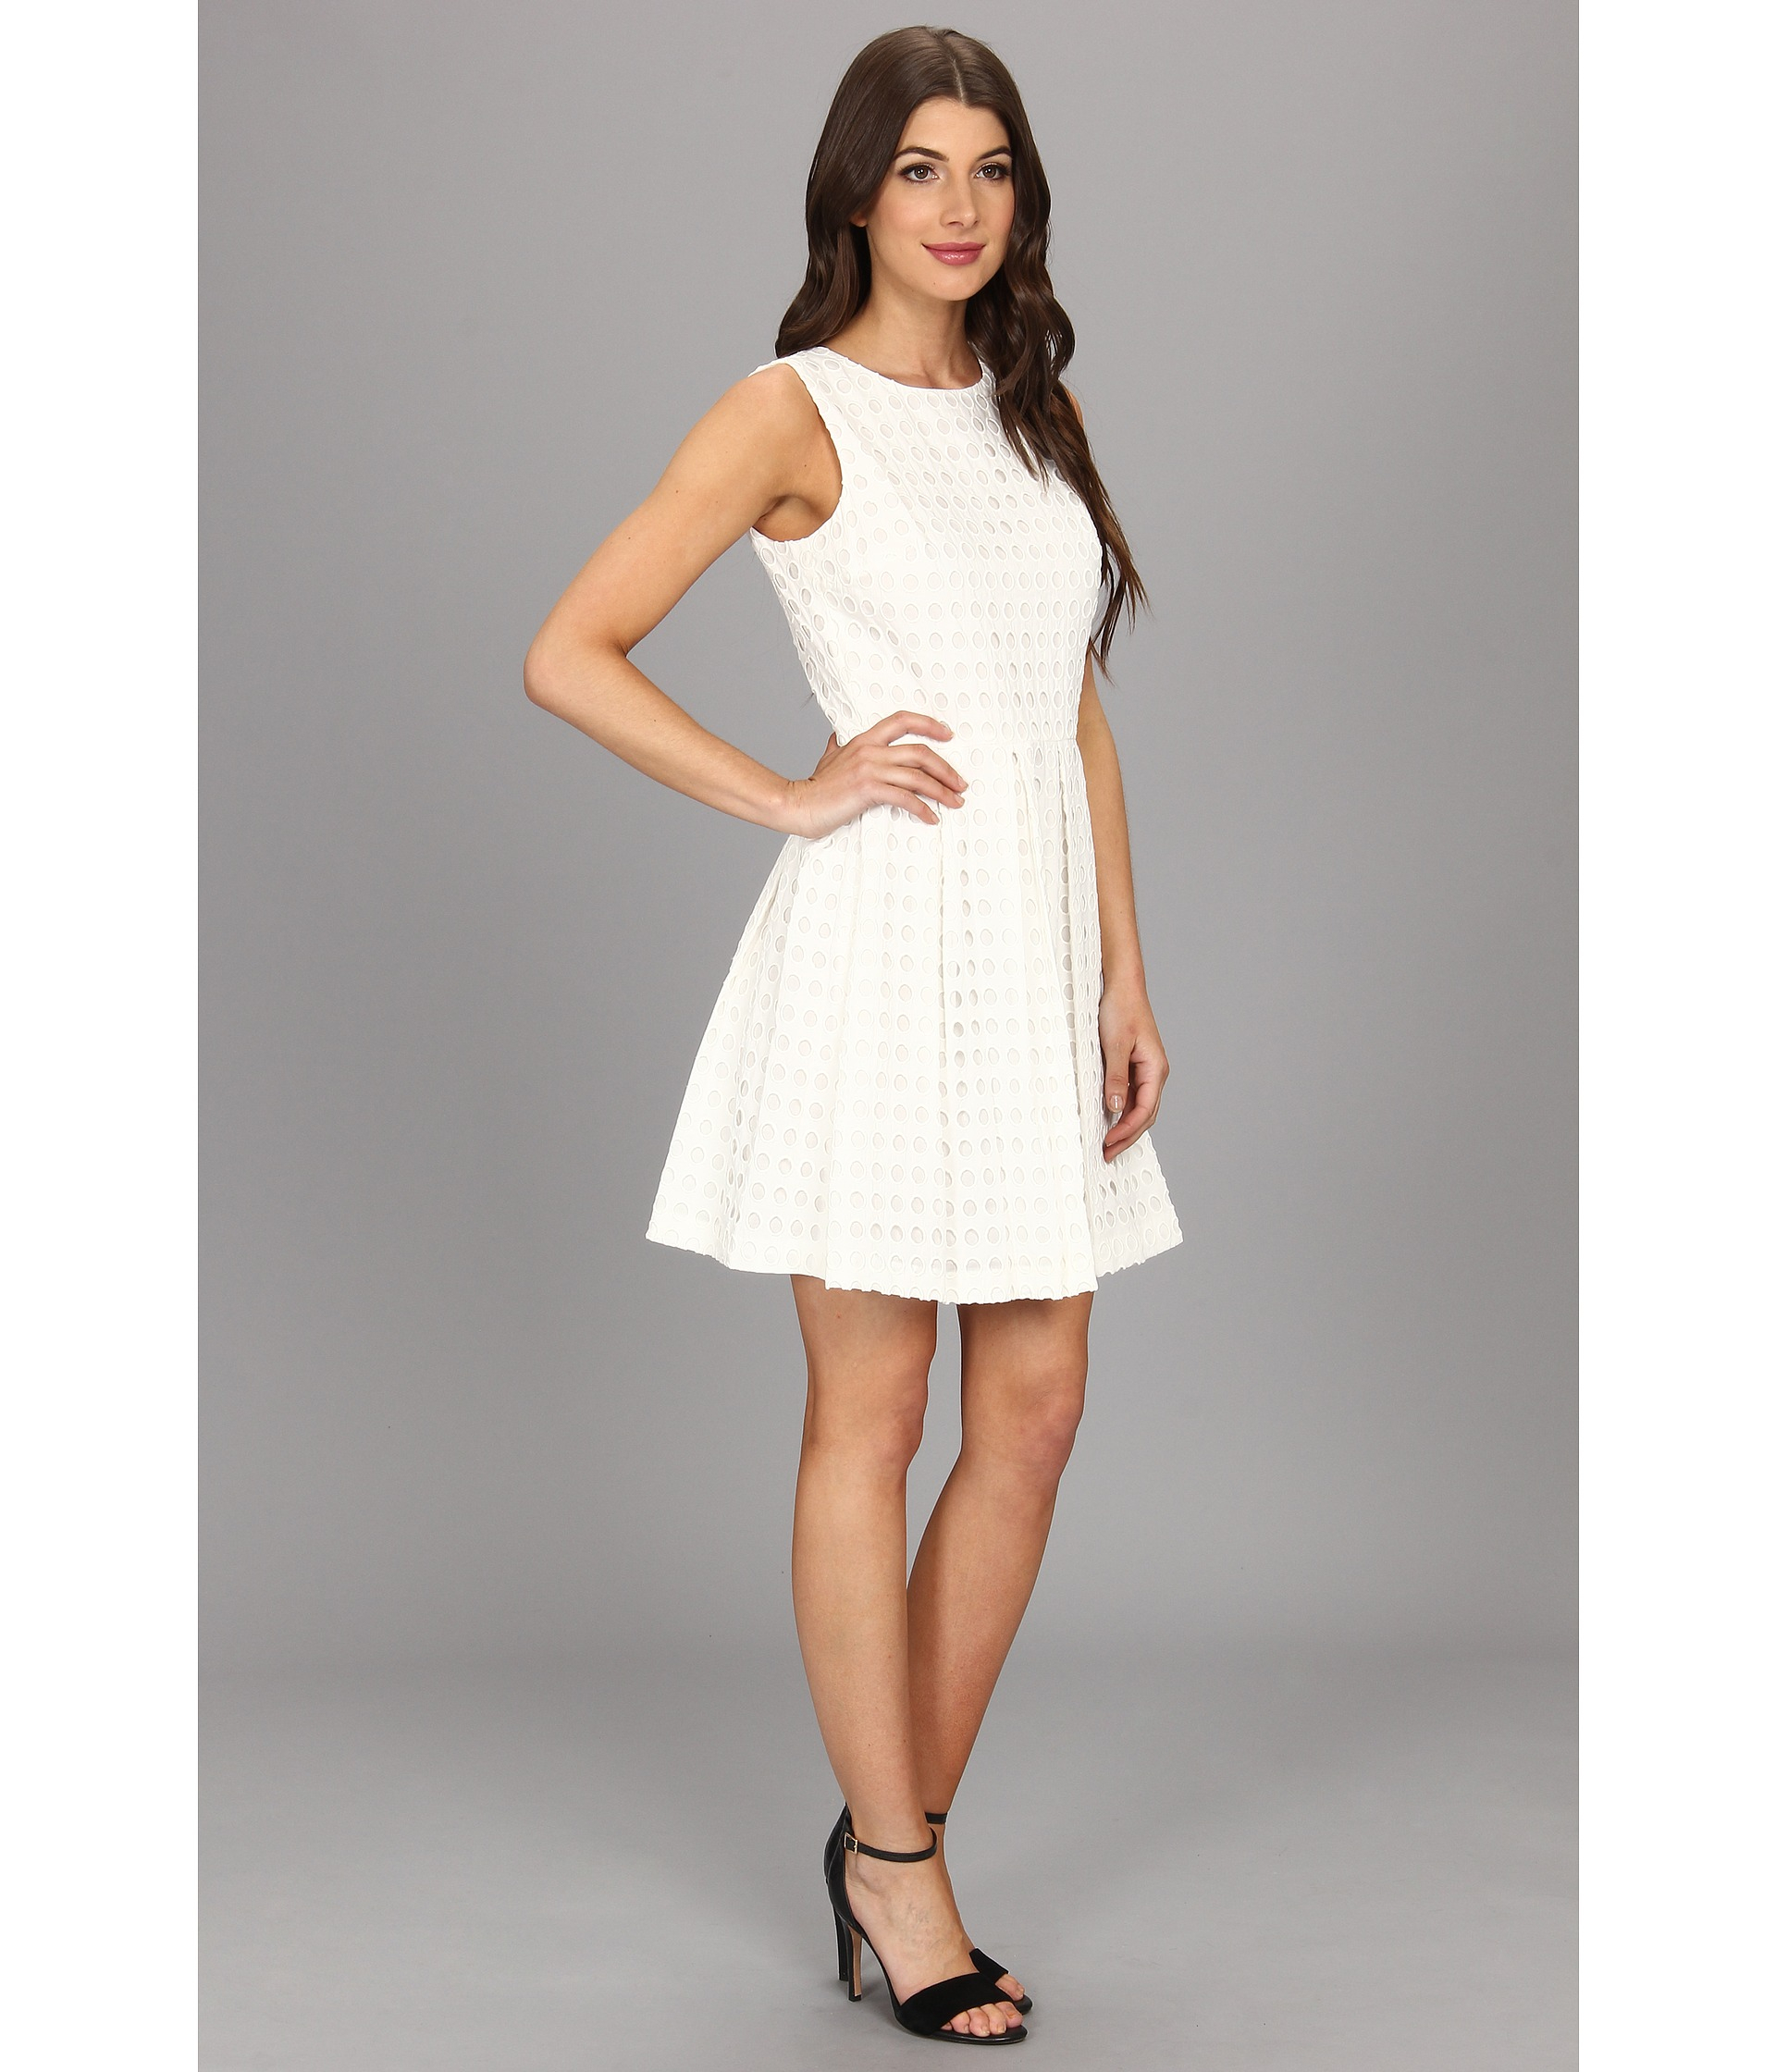 5c8297b827f Vince Camuto Circle Eyelet Dress in White - Lyst